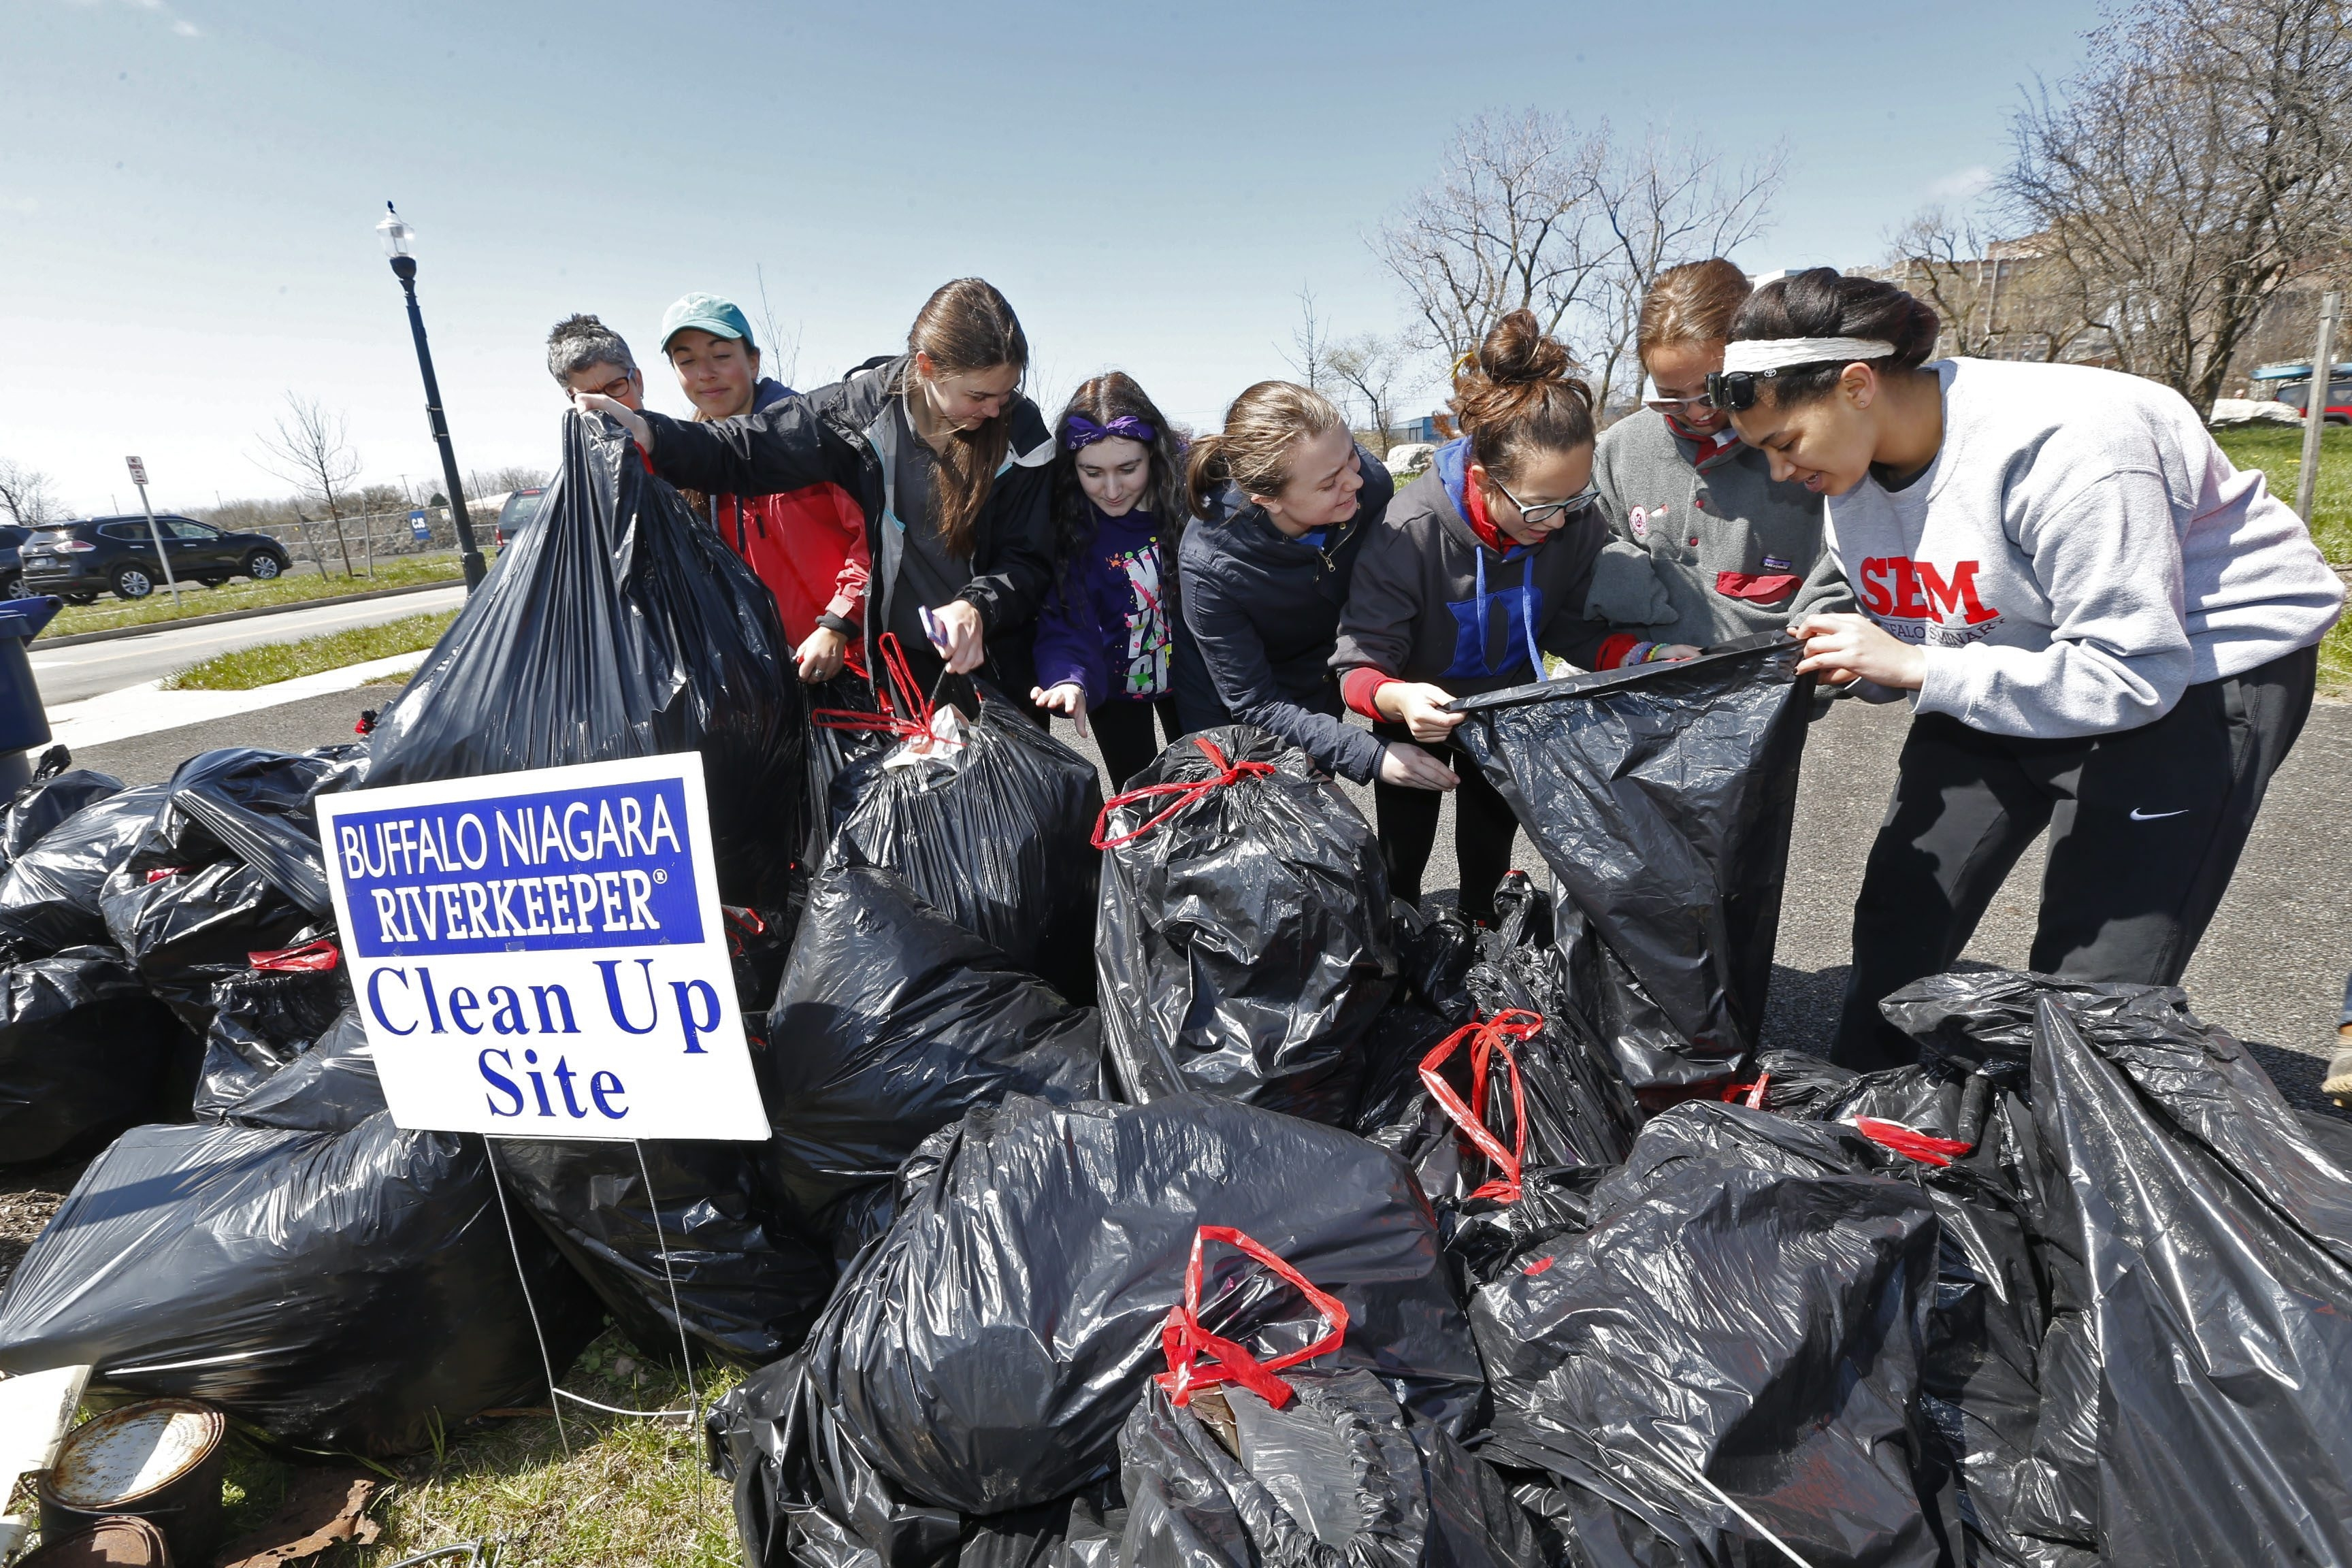 Students, staff and parents from Buffalo Seminary tie up bags after they collected trash along the shoreline near Ohio Street as part of Buffalo Niagara Riverkeeper's annual spring cleanup. A record 1,500 volunteers participated.